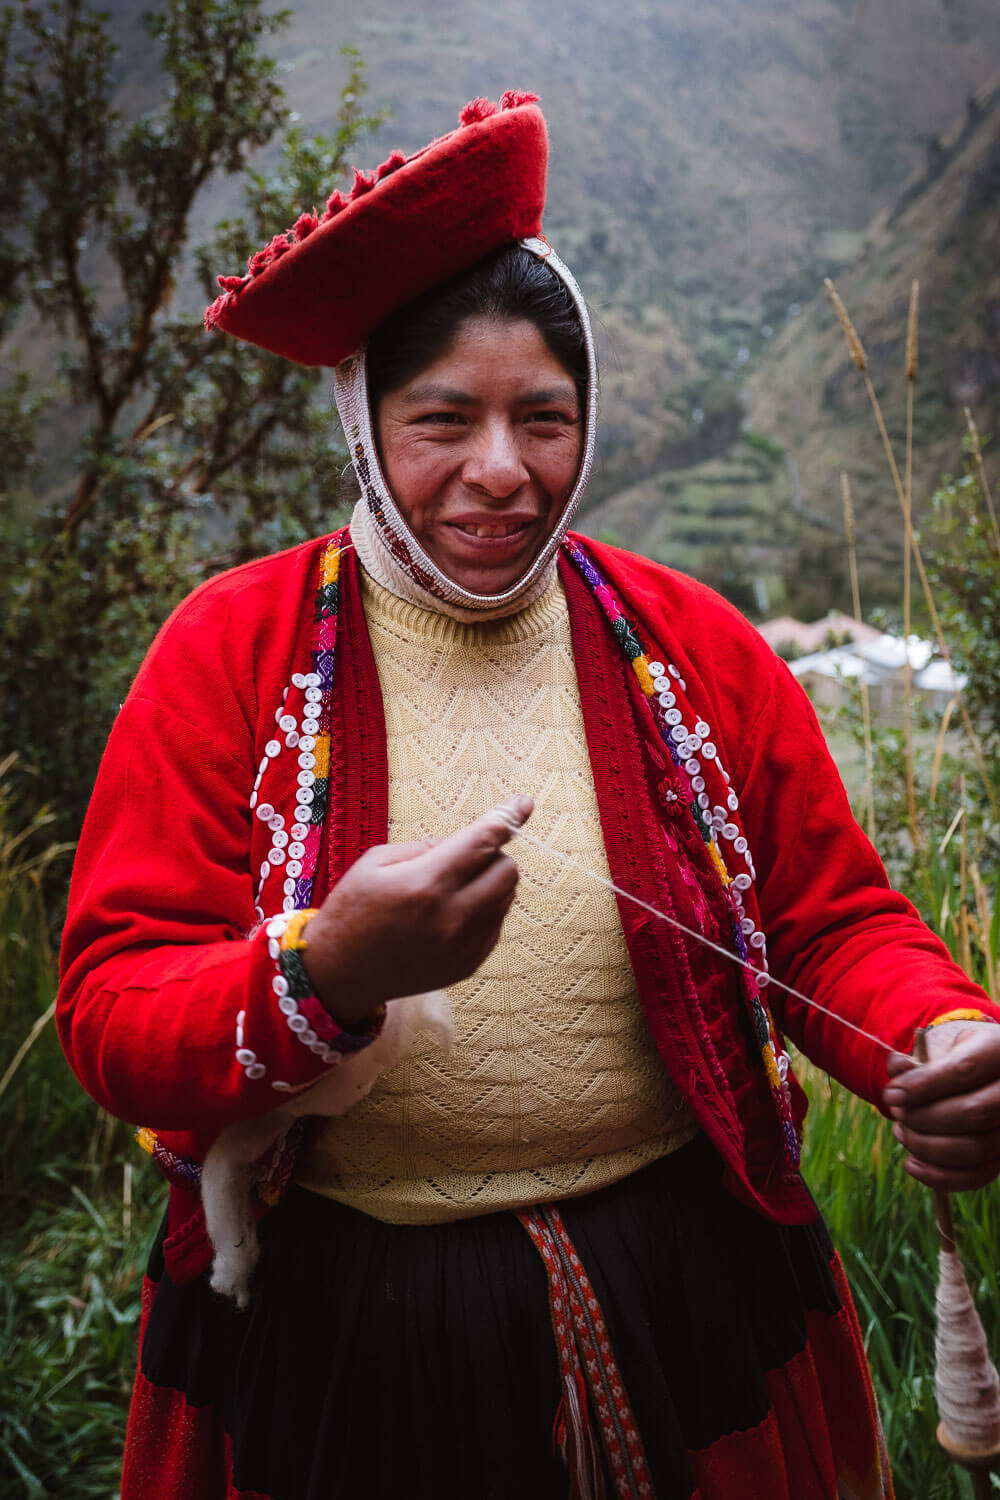 """A weaver shows us the spinning technique to create yarn. The weavers of Patacancha, The Sacred Valley, Peru. Travel photography and guide by © Natasha Lequepeys for """"And Then I Met Yoko"""". #peru #sacredvalley #patacancha #photoblog #travelblog #travelphotography #portraitphotography #travelitinerary #fujifilm #weaving #tradition #culture #people #andes #village #weavingdemonstration #cusco #ollantaytambo #travel #travelperu"""